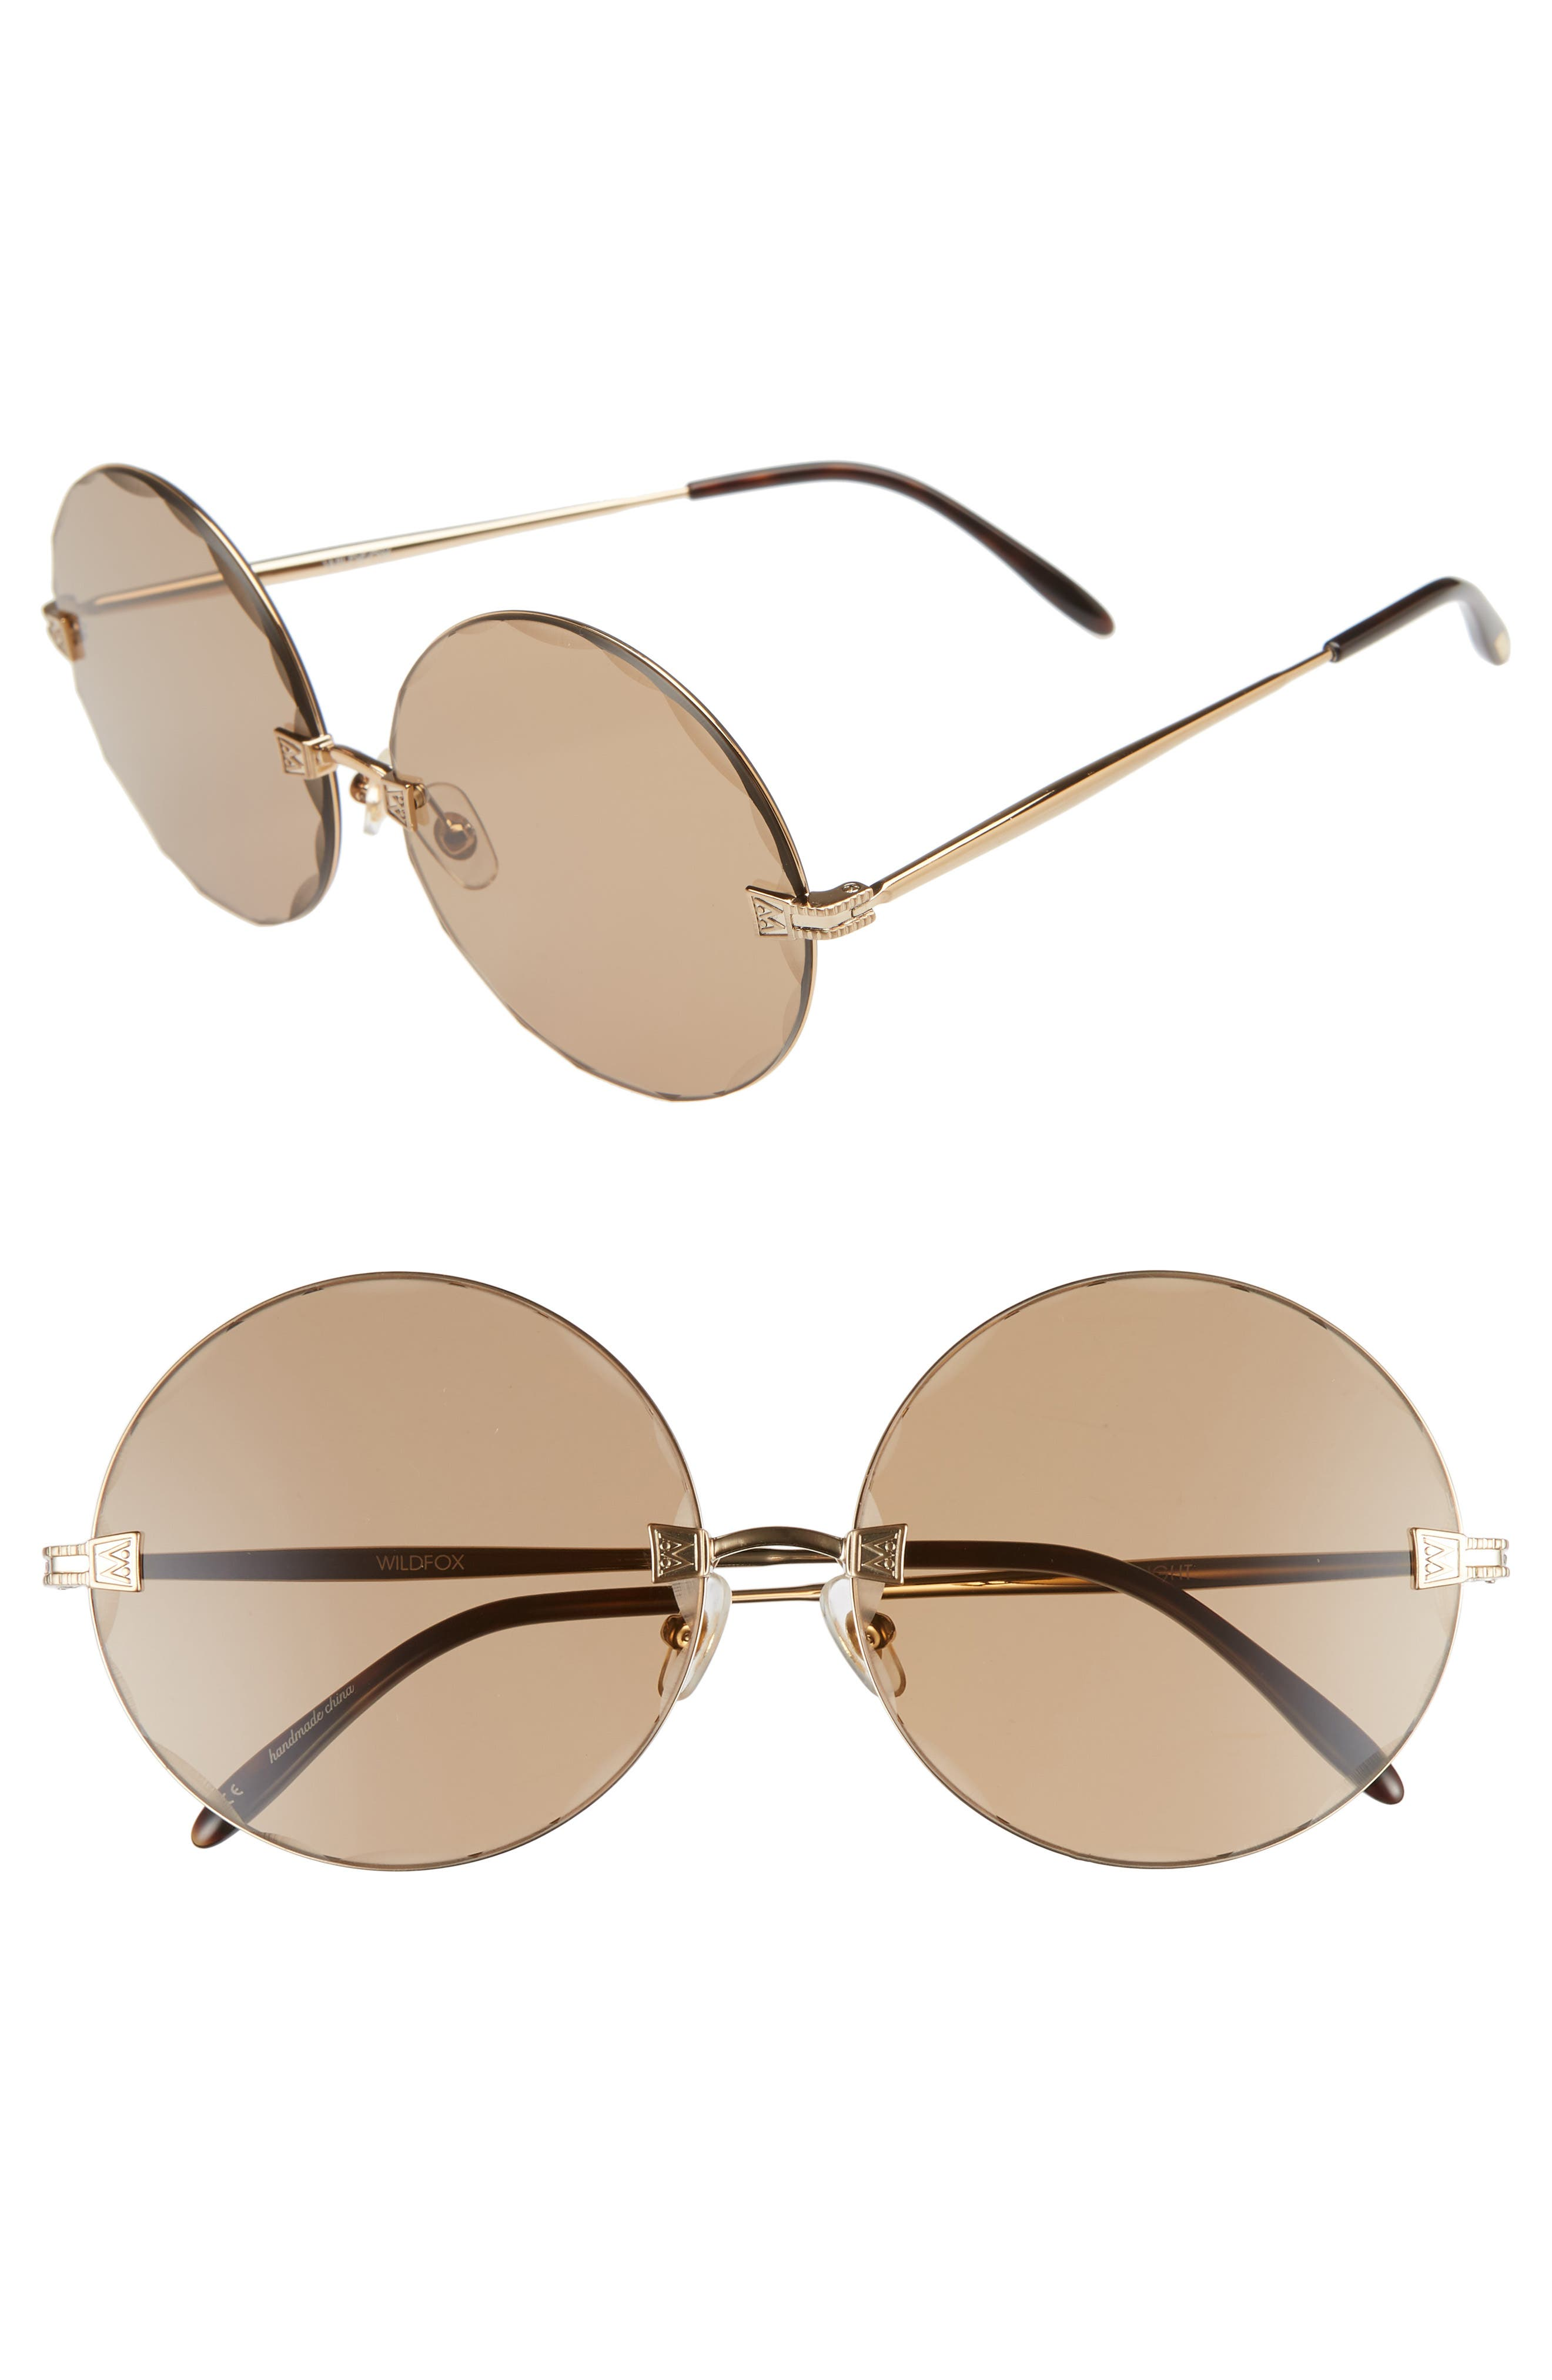 Starlight 62mm Oversize Round Sunglasses,                         Main,                         color, ANTIQUE GOLD/ BROWN SOLID